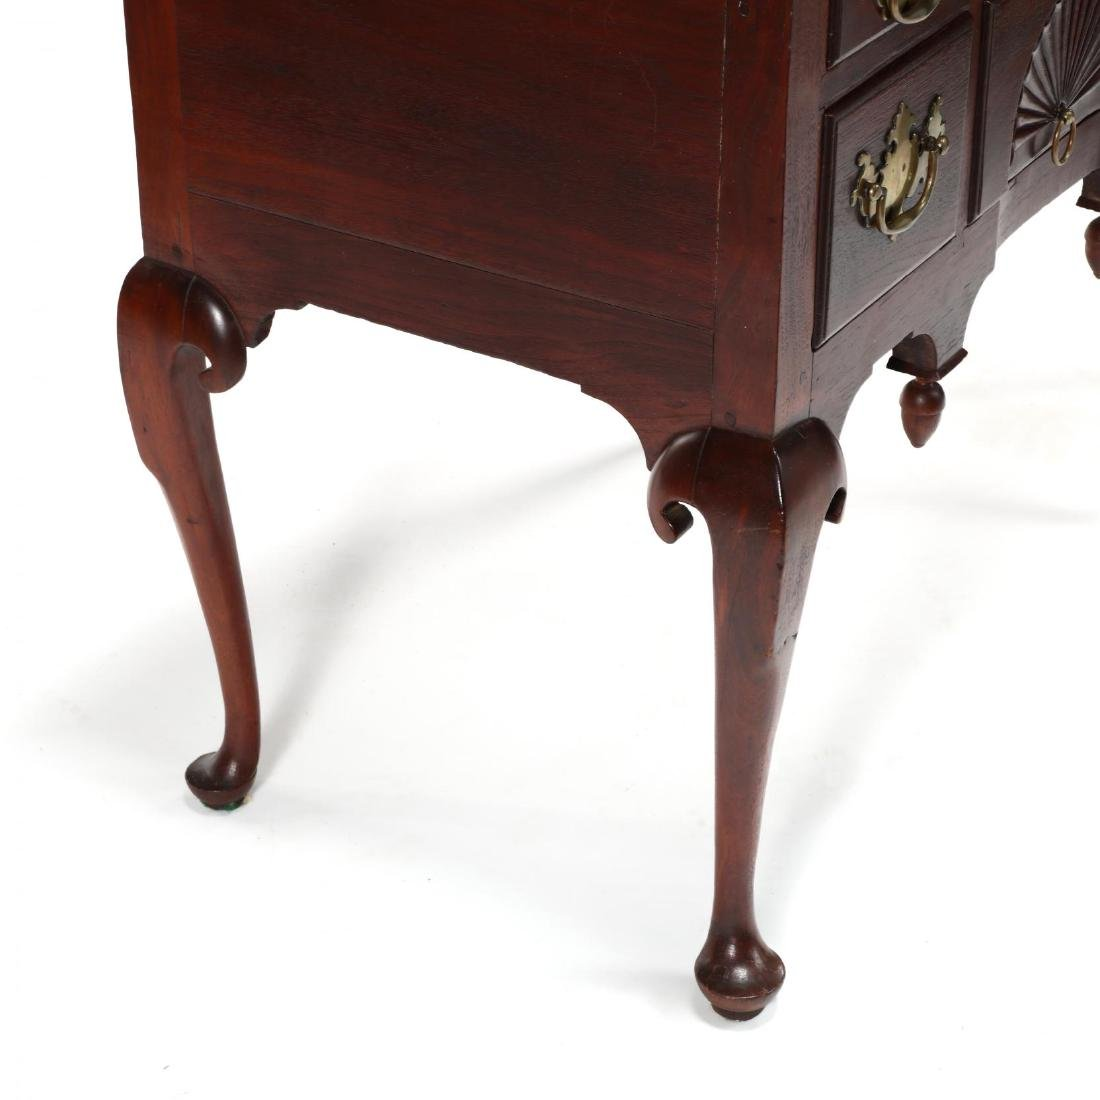 New England Queen Anne Walnut Dressing Table - 3